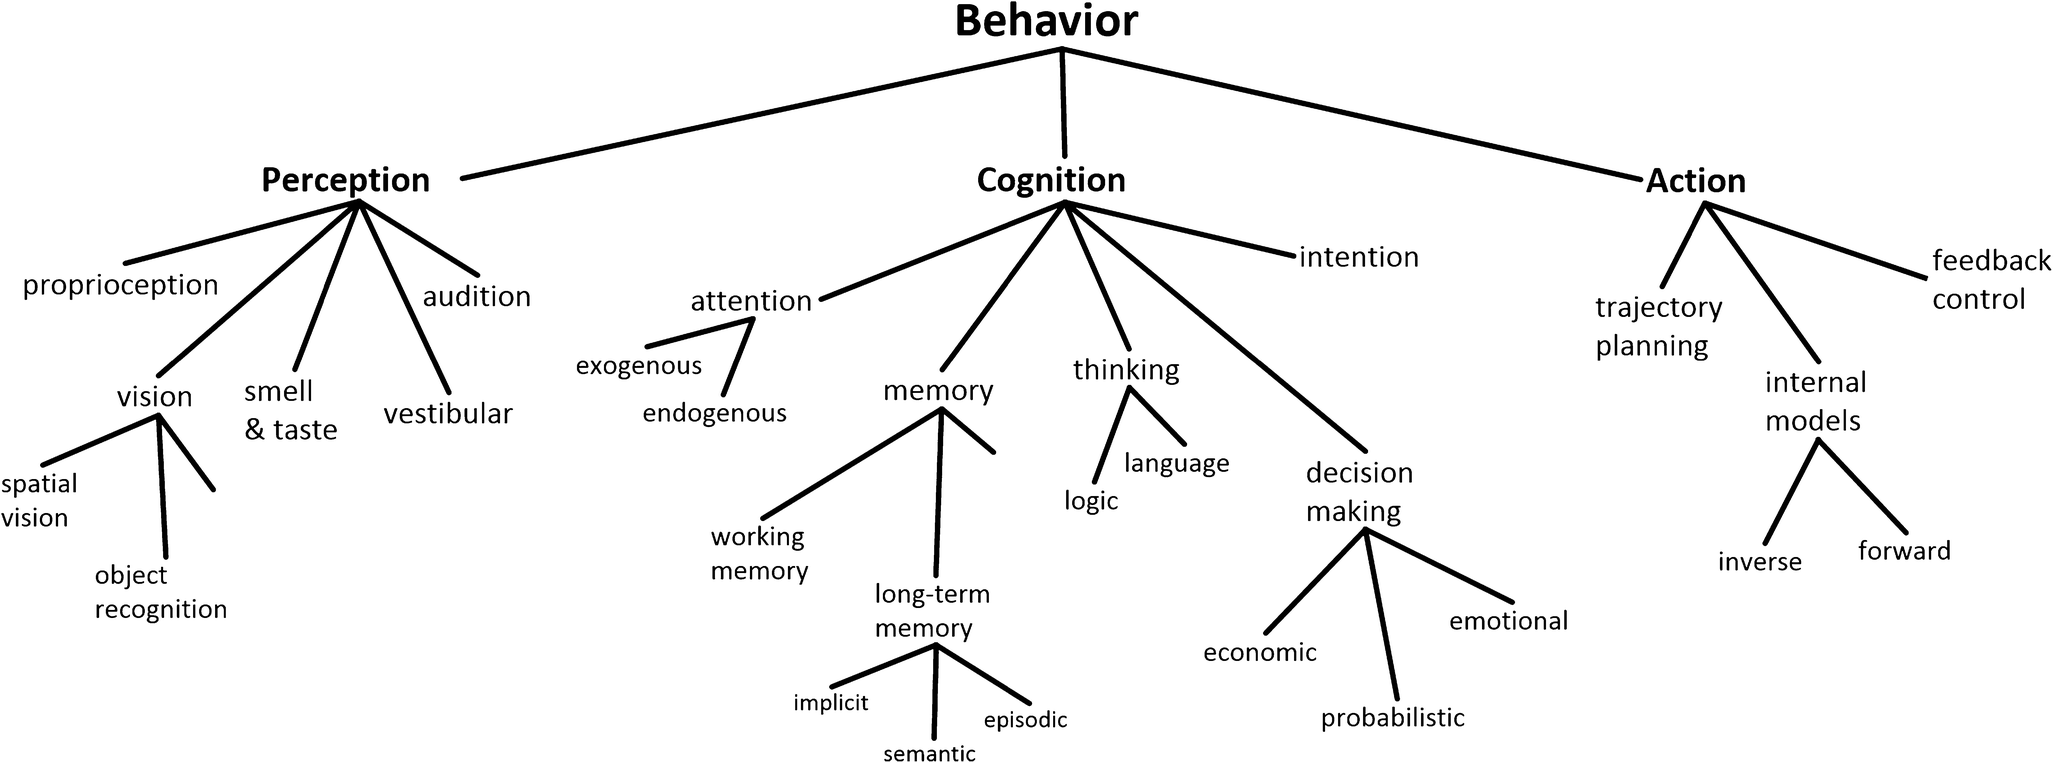 Cognition And Behavior Attention >> Resynthesizing Behavior Through Phylogenetic Refinement